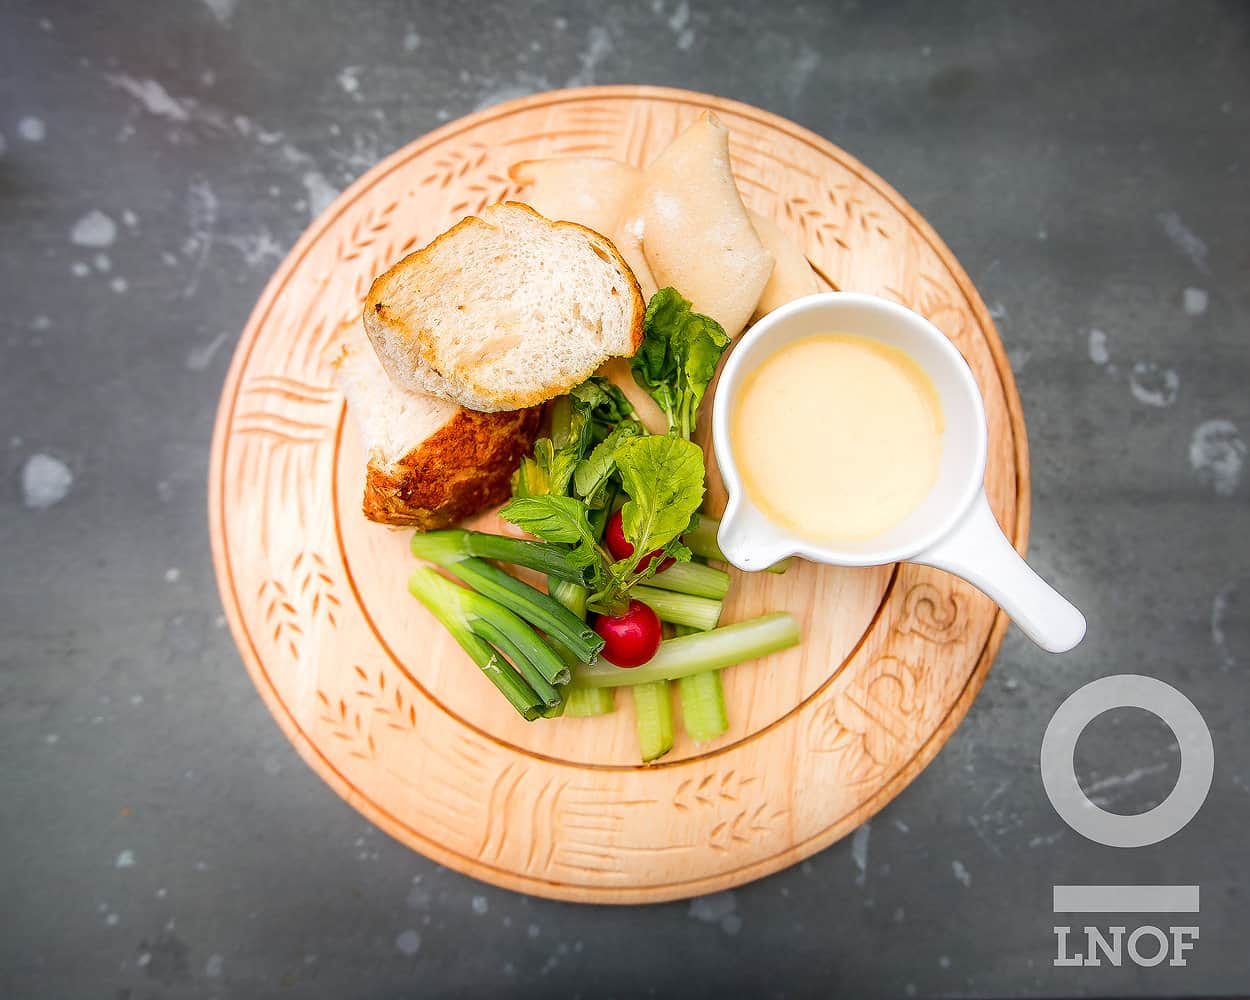 Welsh rarebit fondue with celery, crusty bread and spring onions at The Botanist in Newcastle